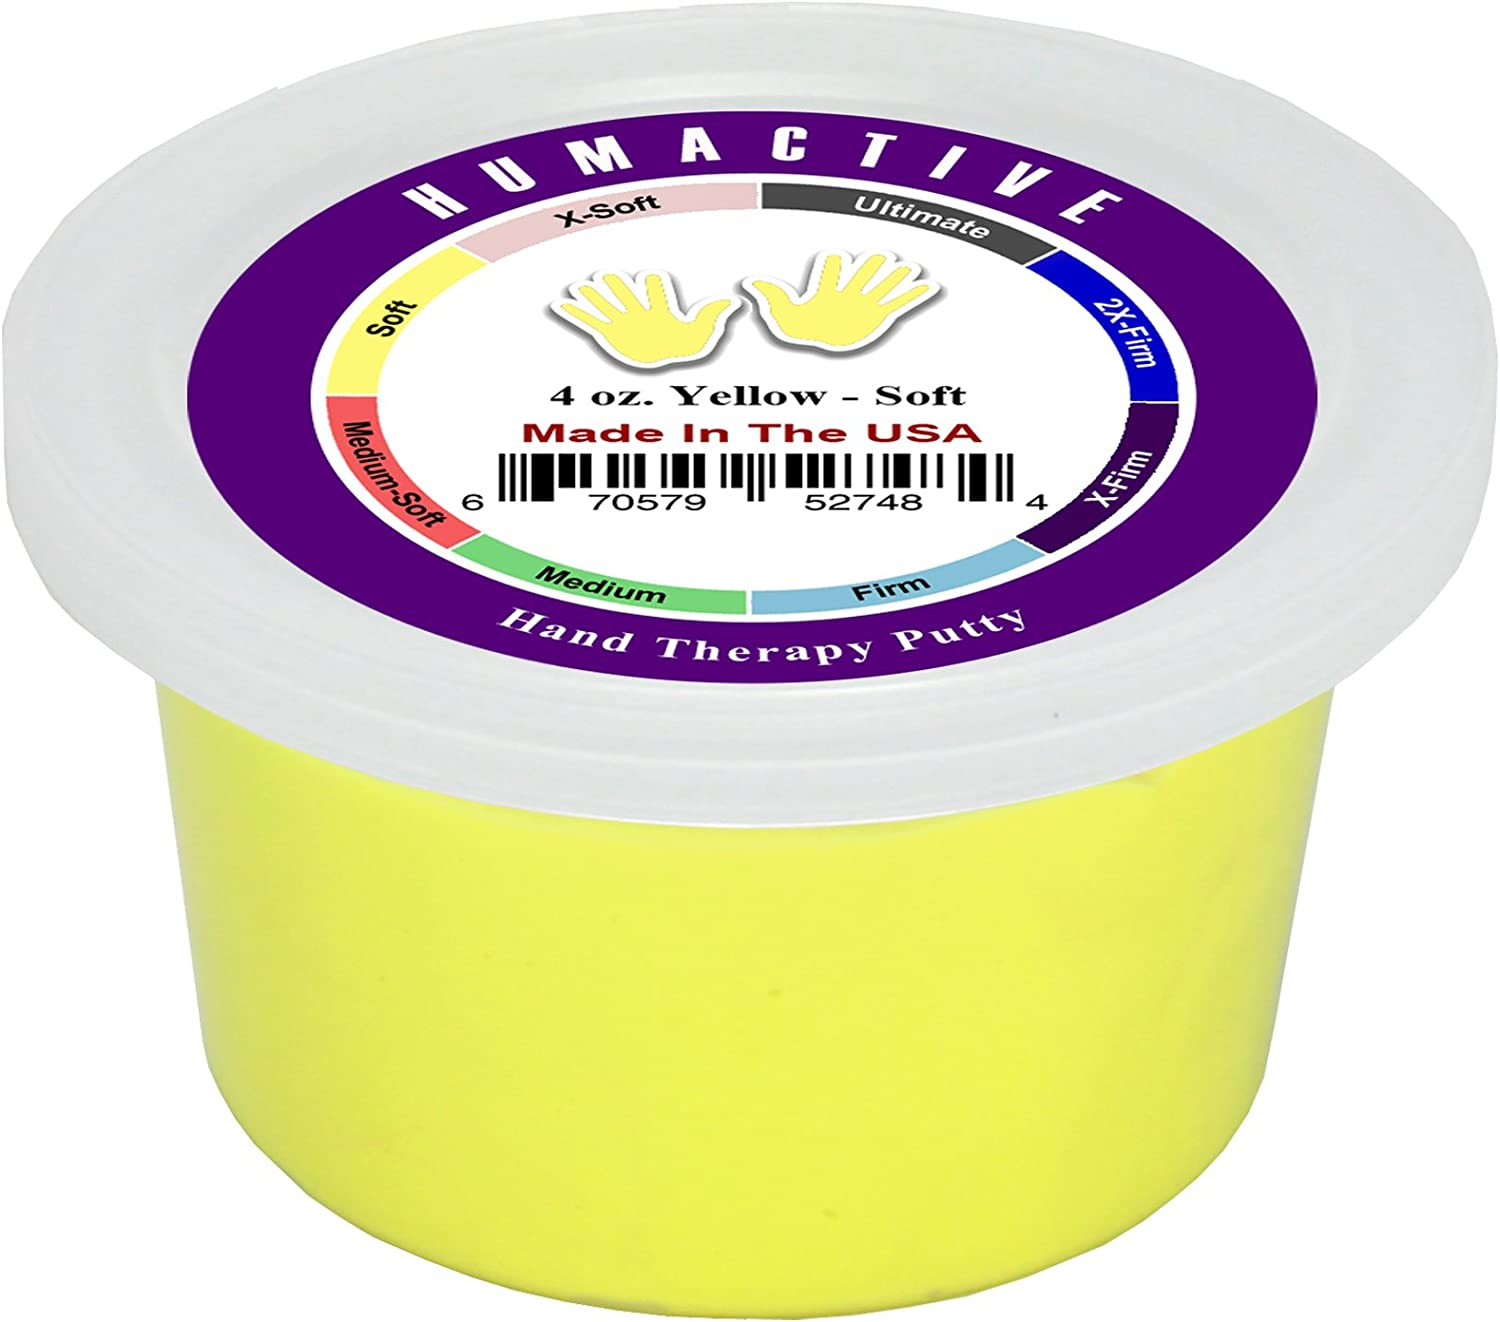 Hand Therapy List price Max 57% OFF Putty - and Occupational Strengt Physcial